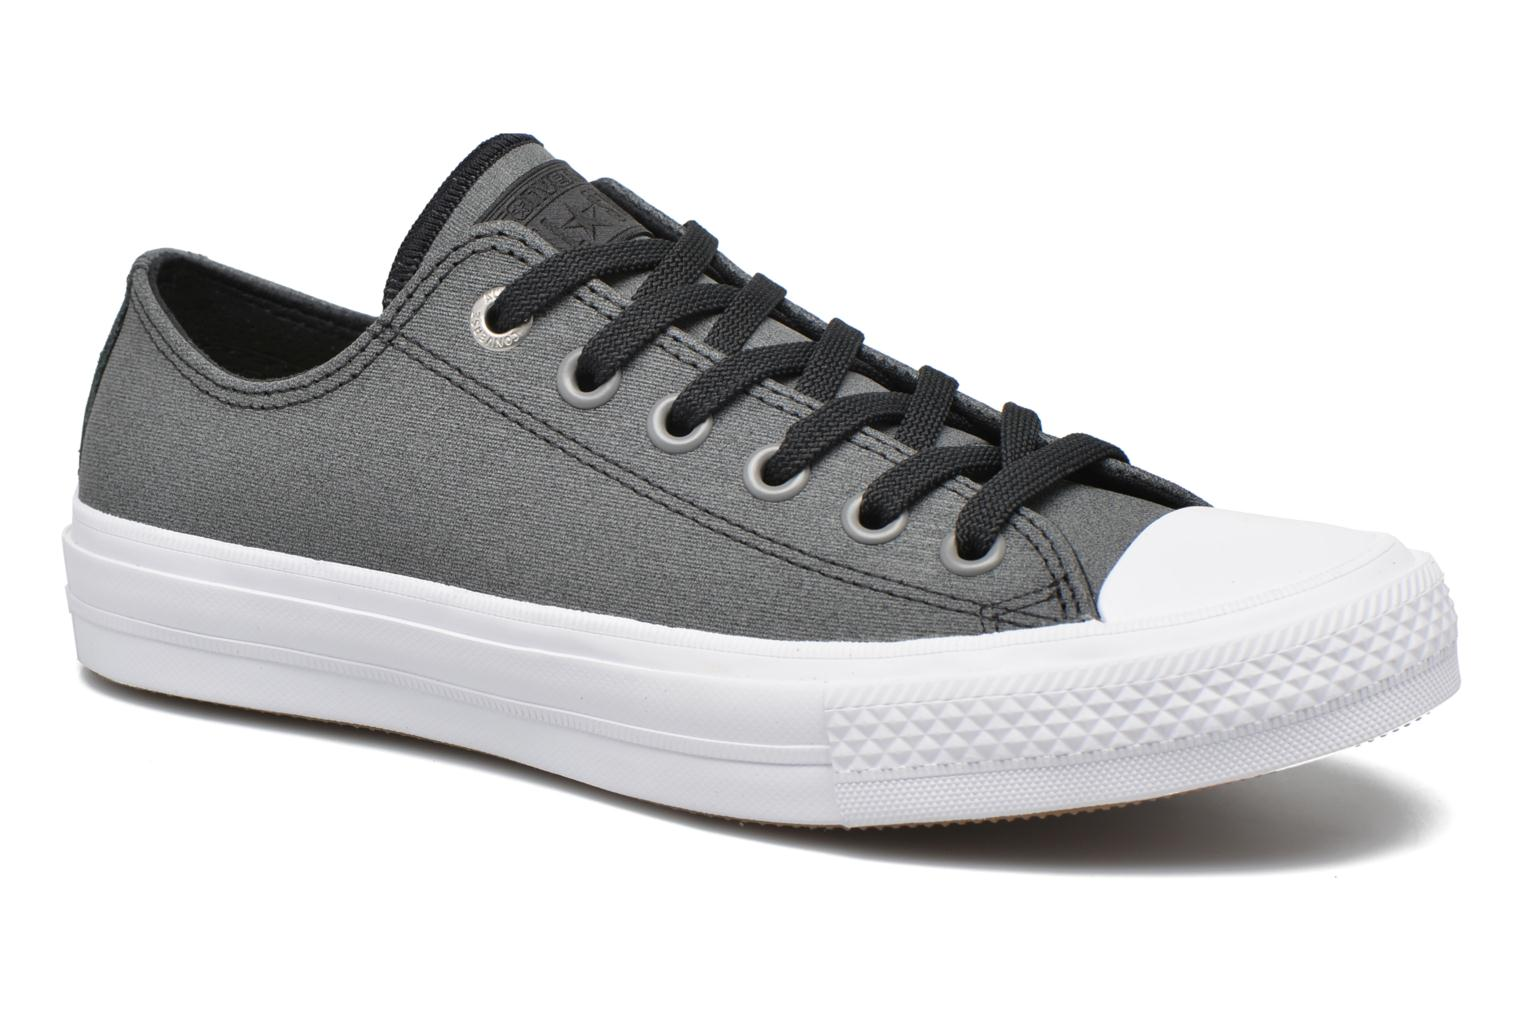 Chuck Taylor All Star II Ox W Black/Mason/White